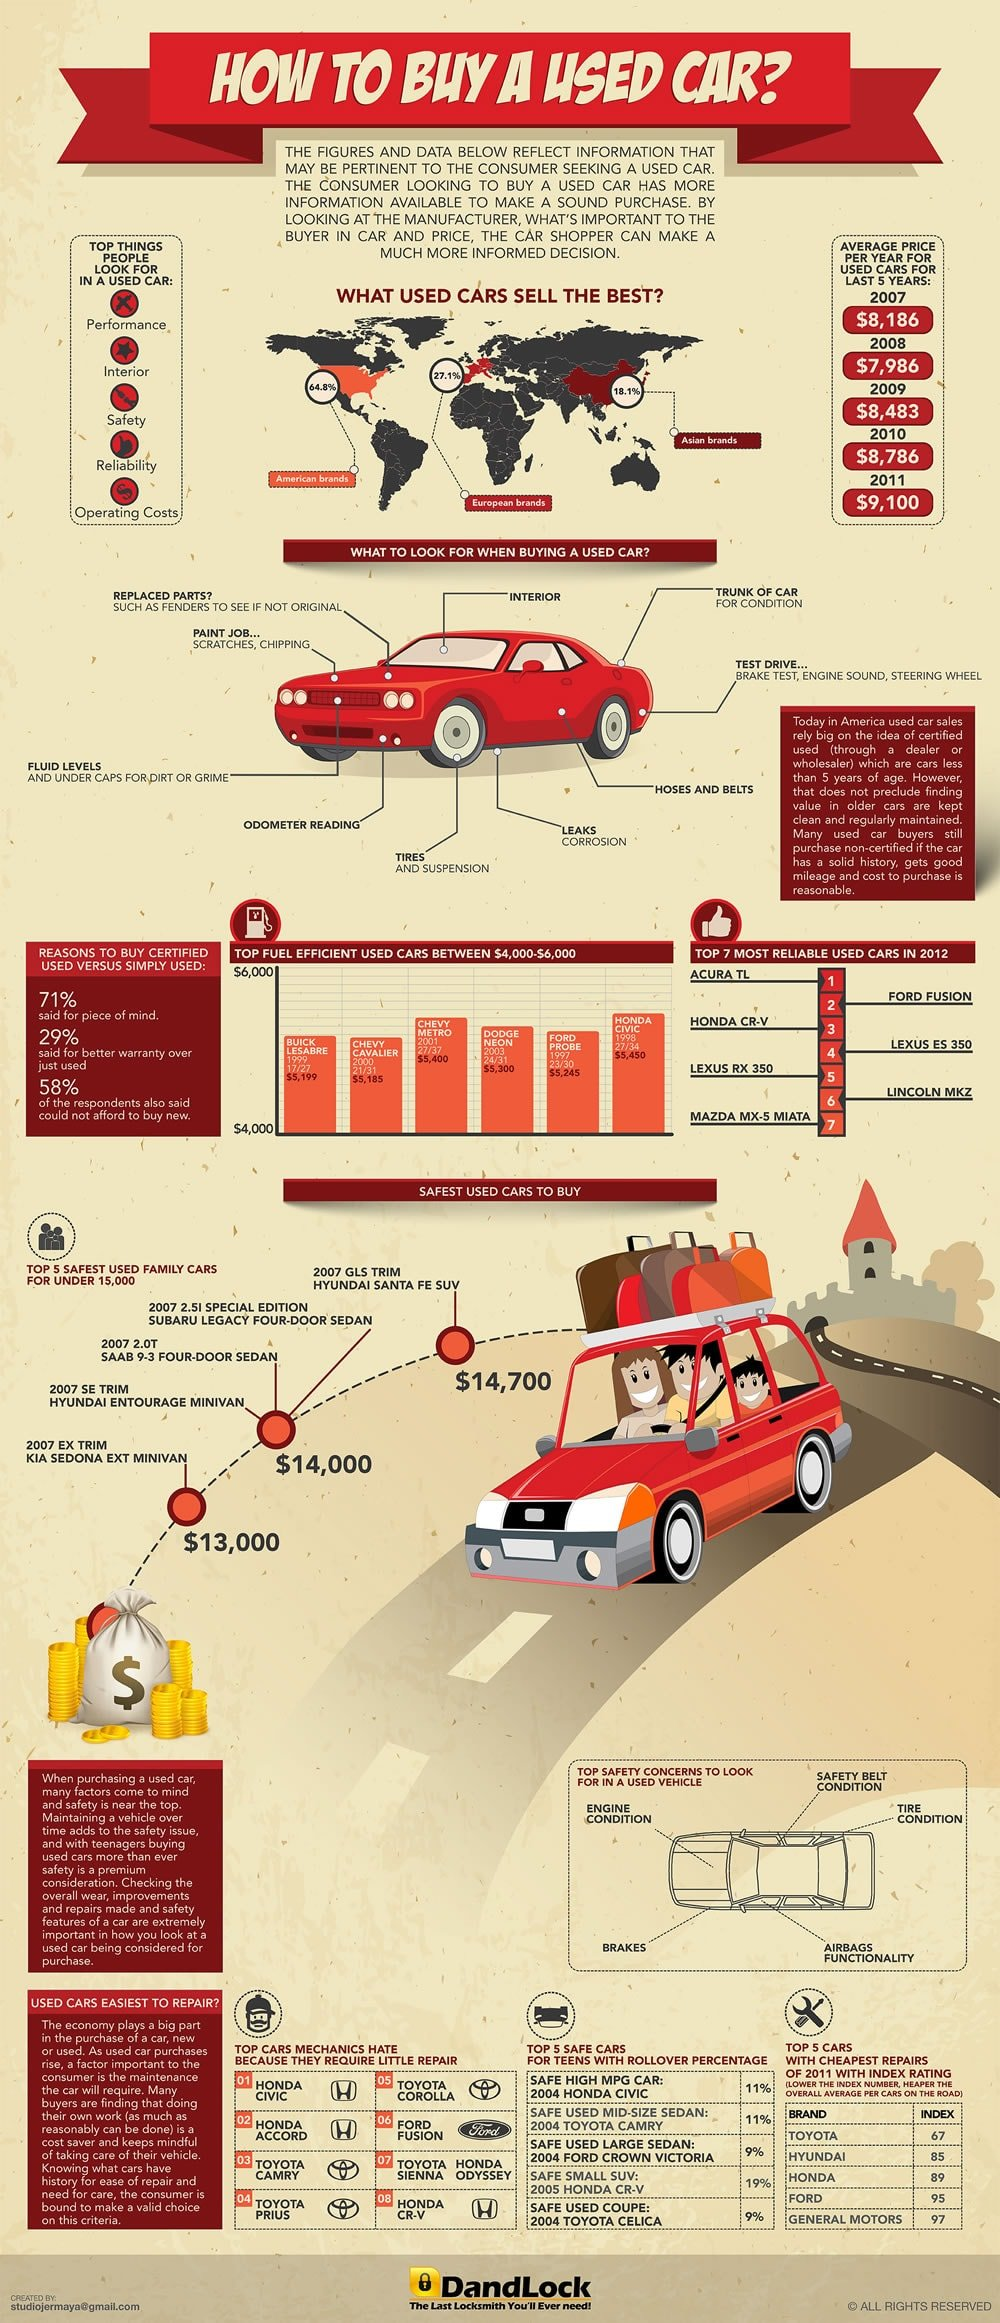 Infographic: How to Buy a Used Car